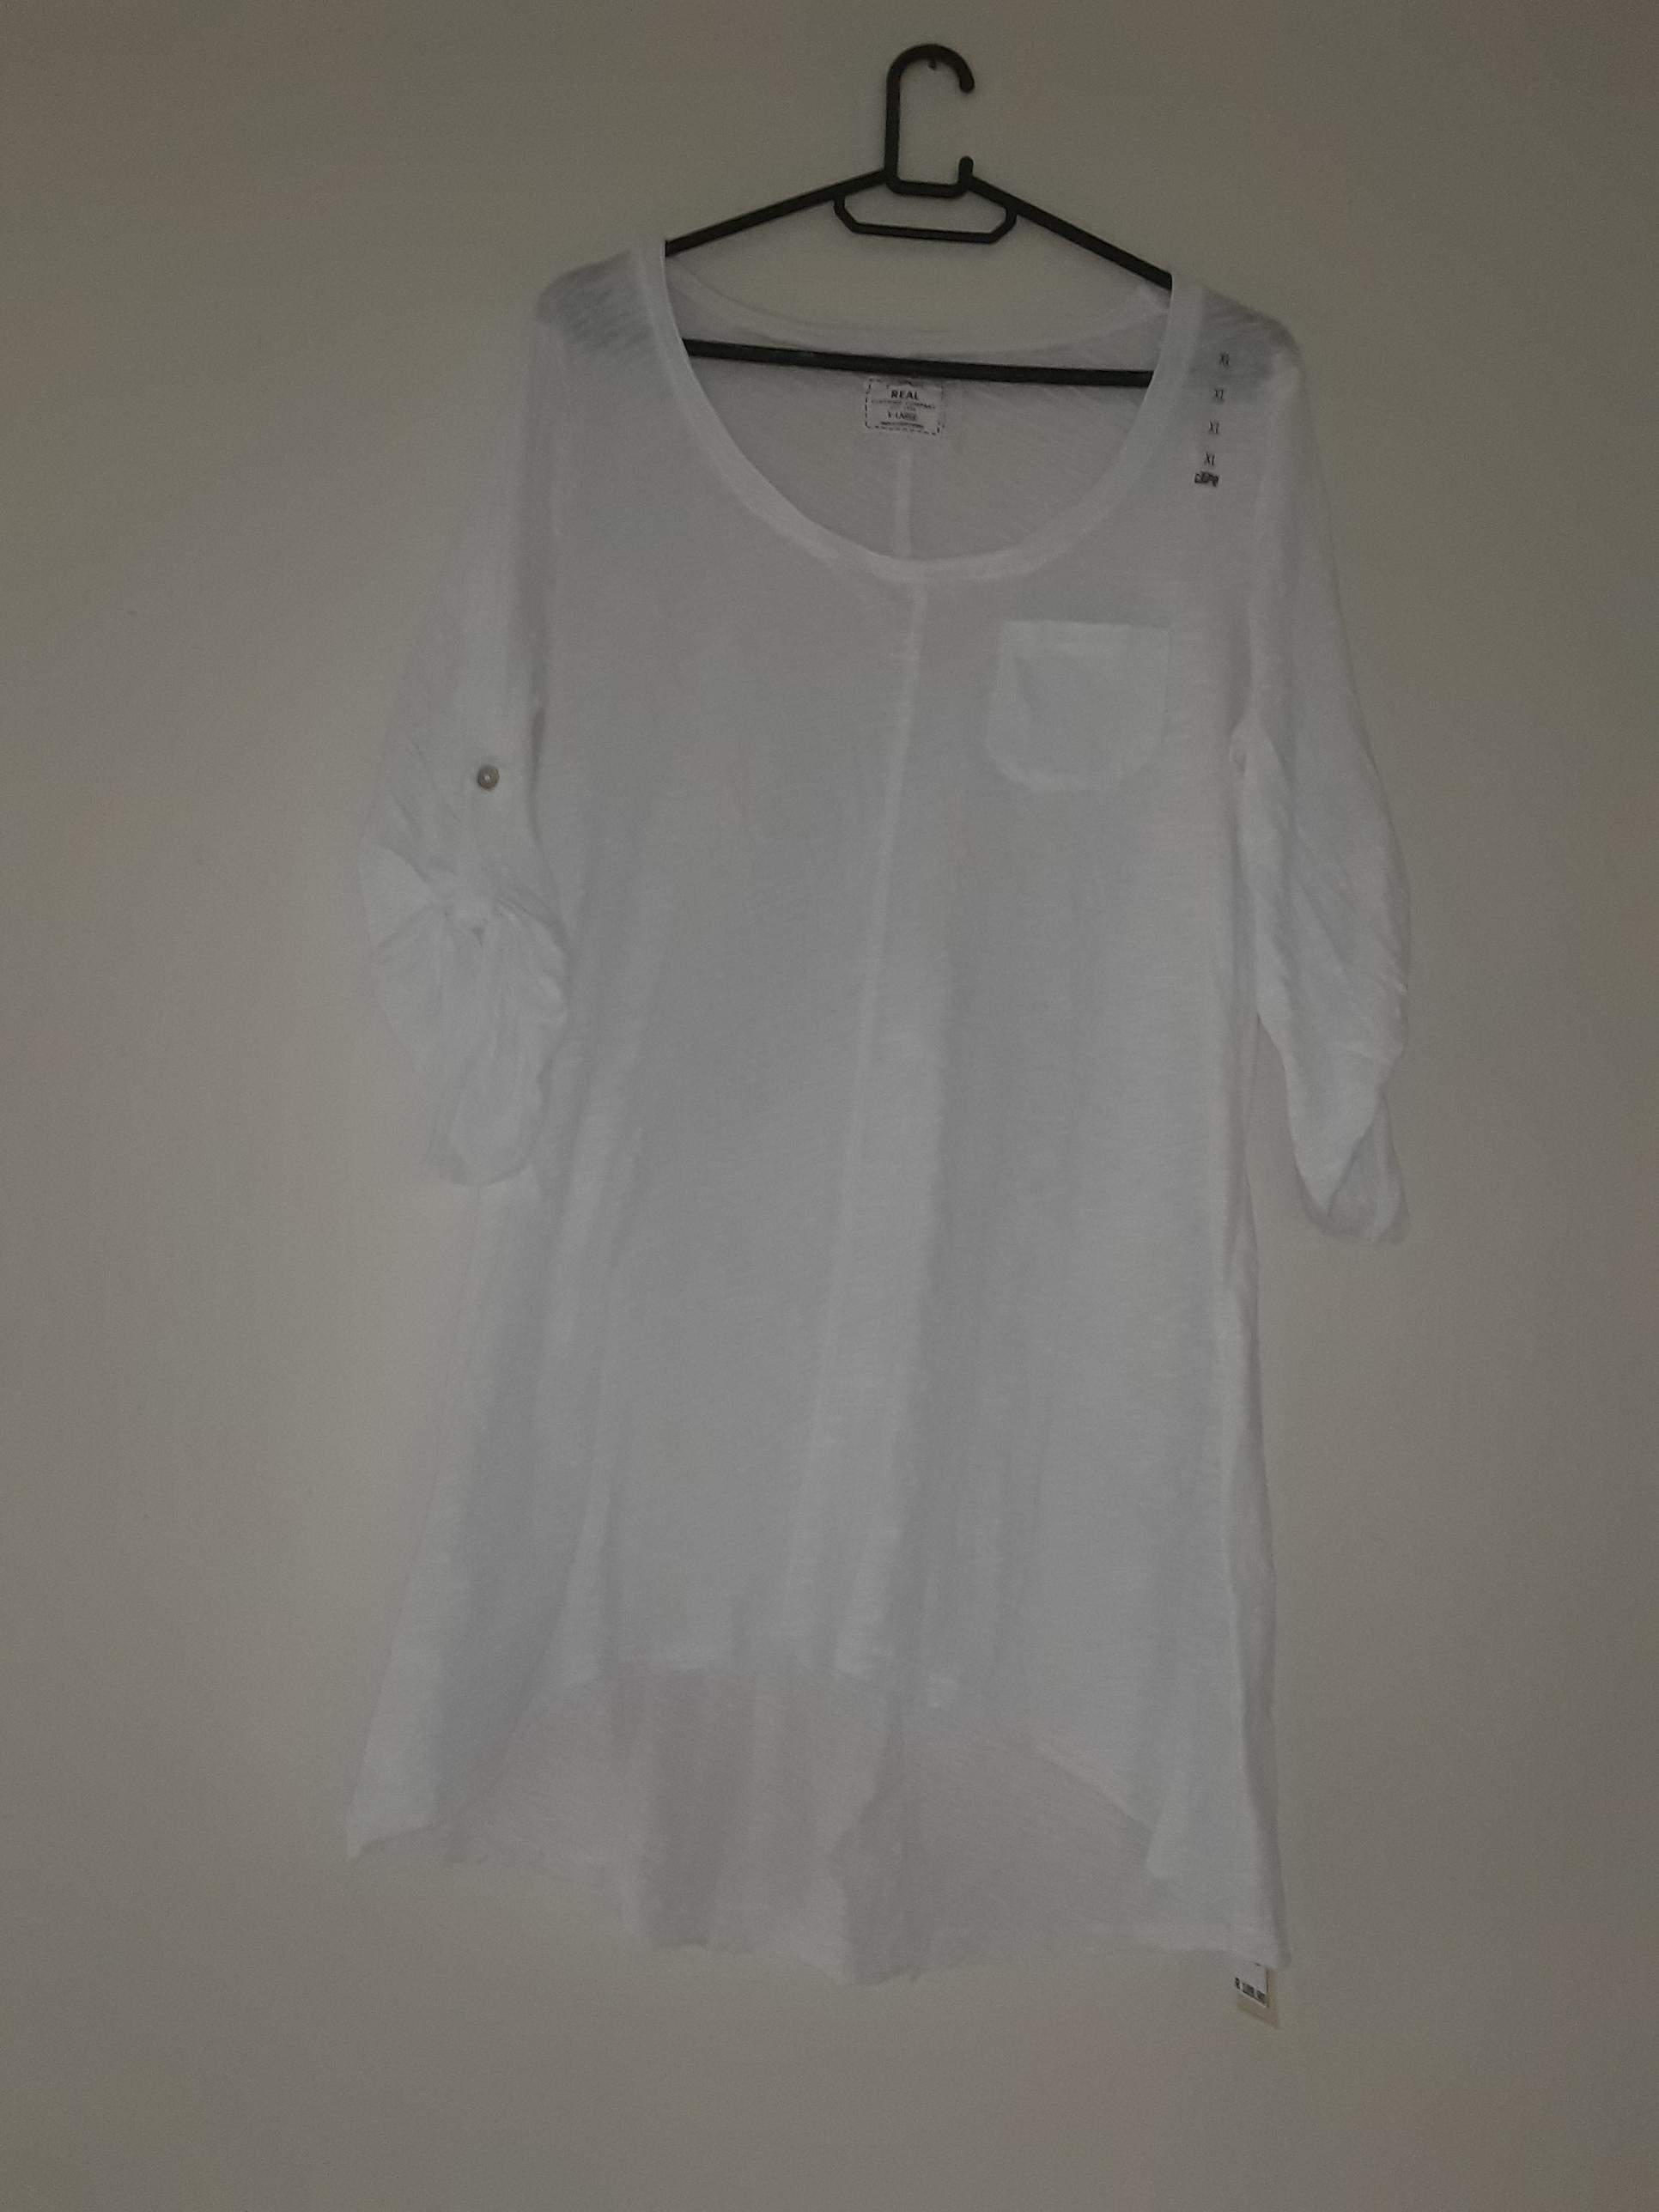 PnP Clothing Loose Shirt